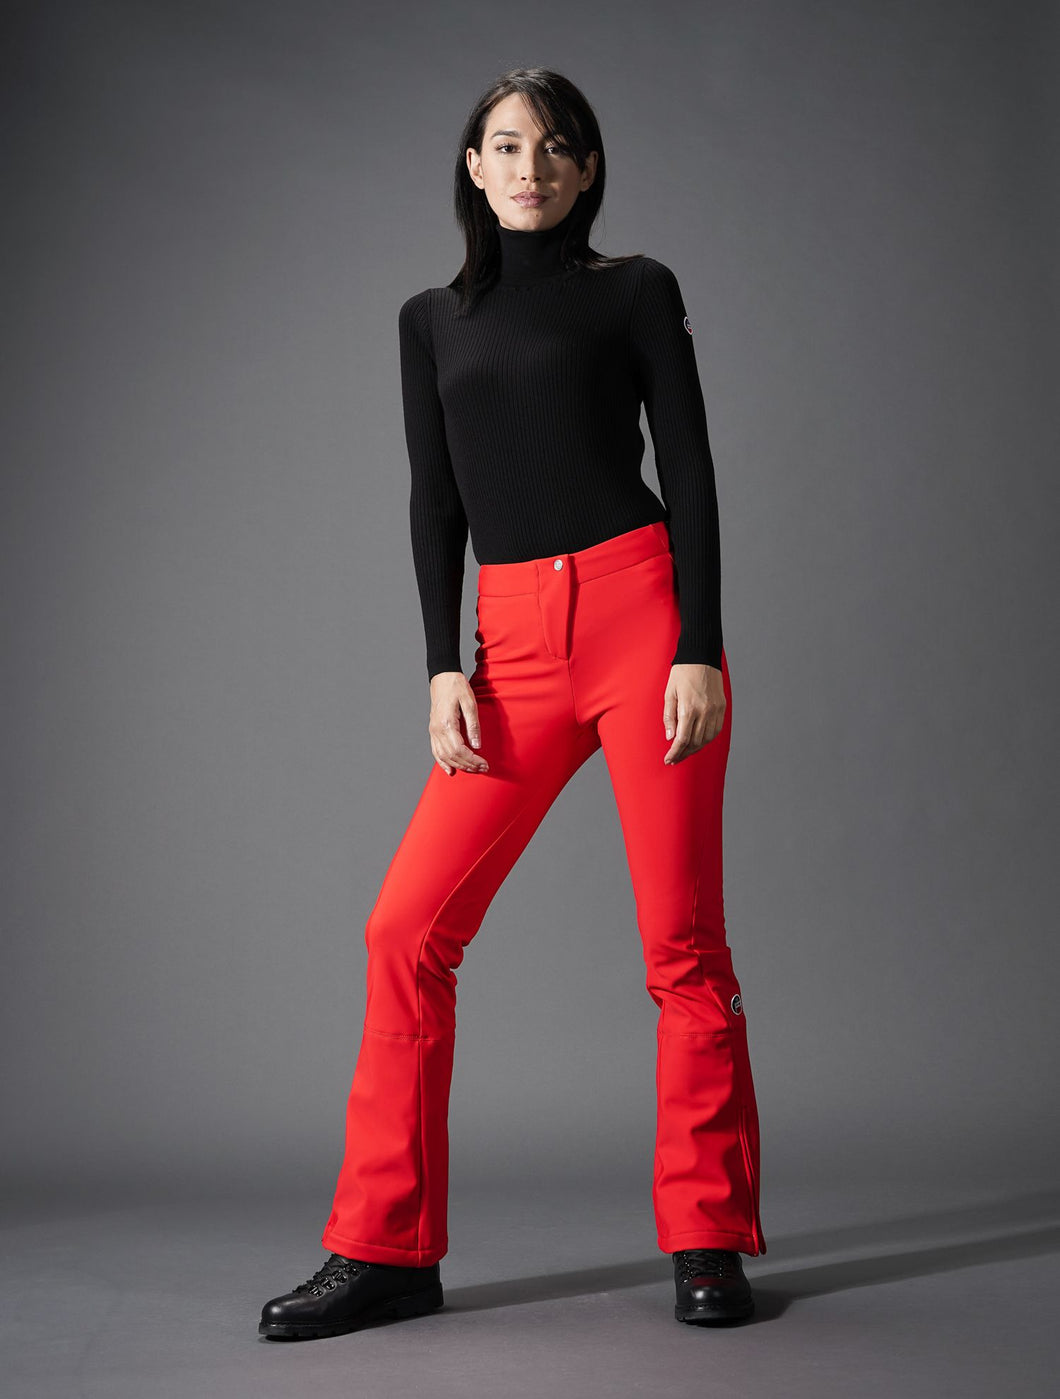 Tipi Iii Skinny pants - RED